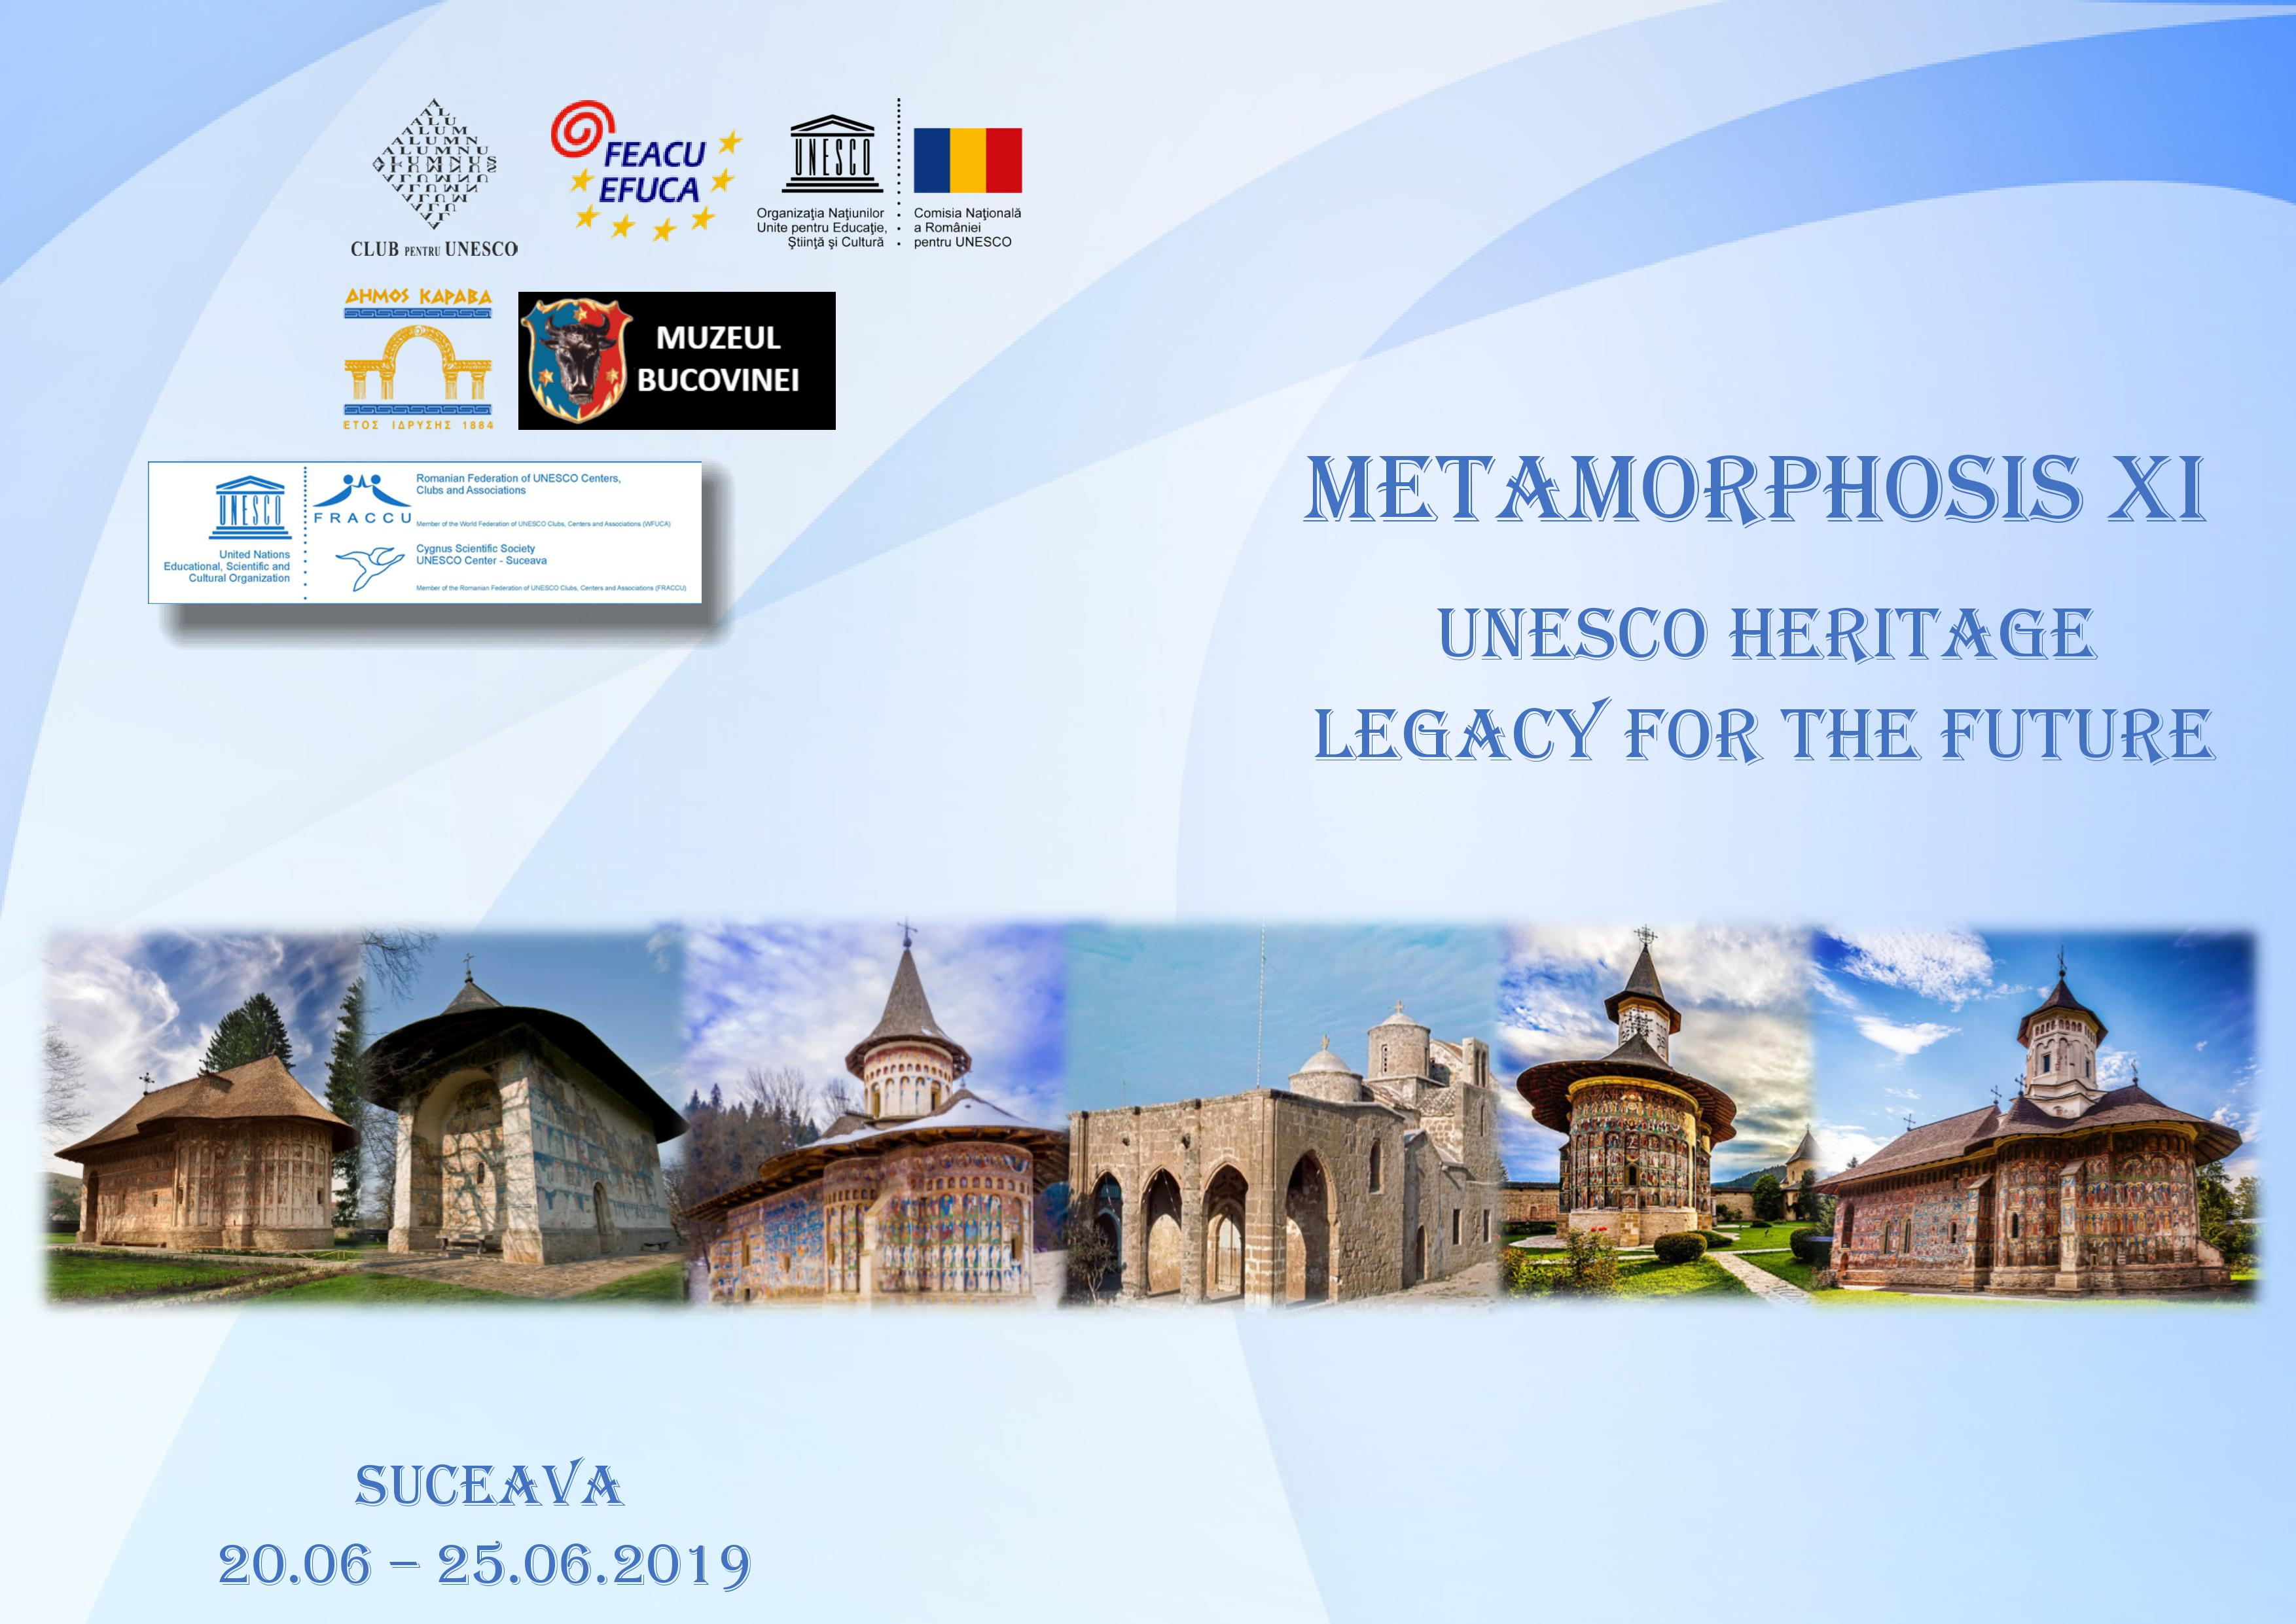 Metamorphosis XI - UNESCO Heritage, Legacy for the Future